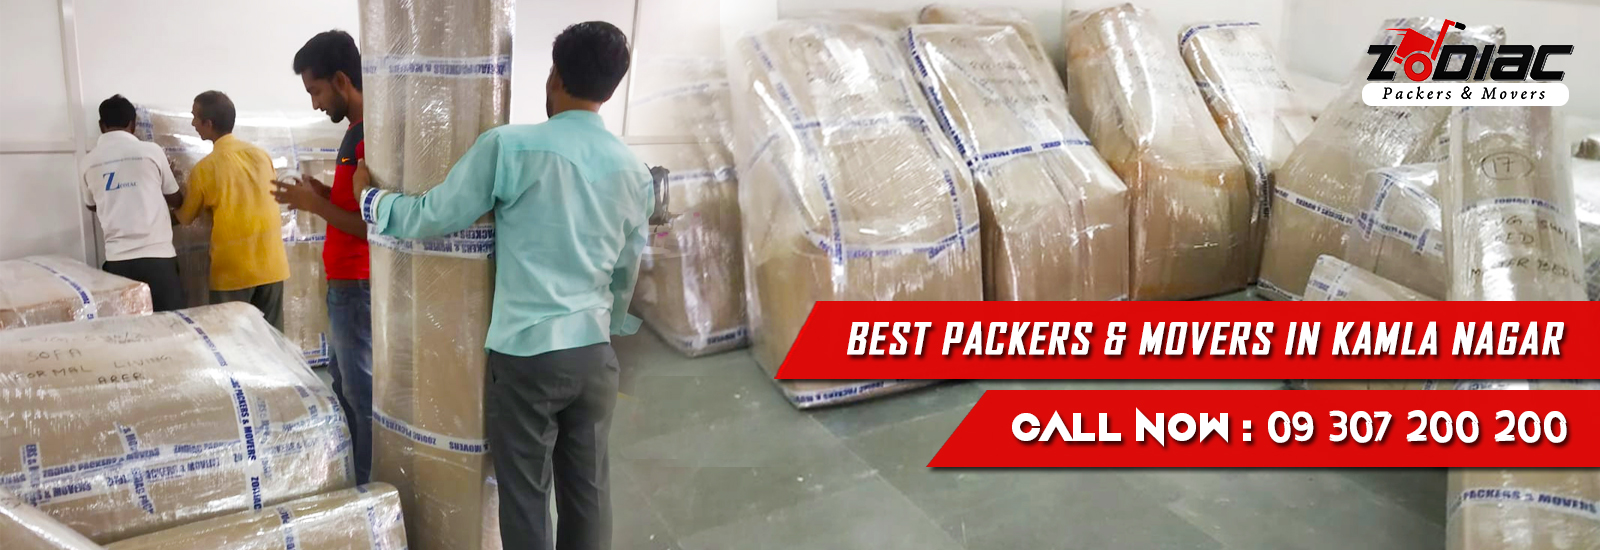 Packers and Movers in Kamla Nagar